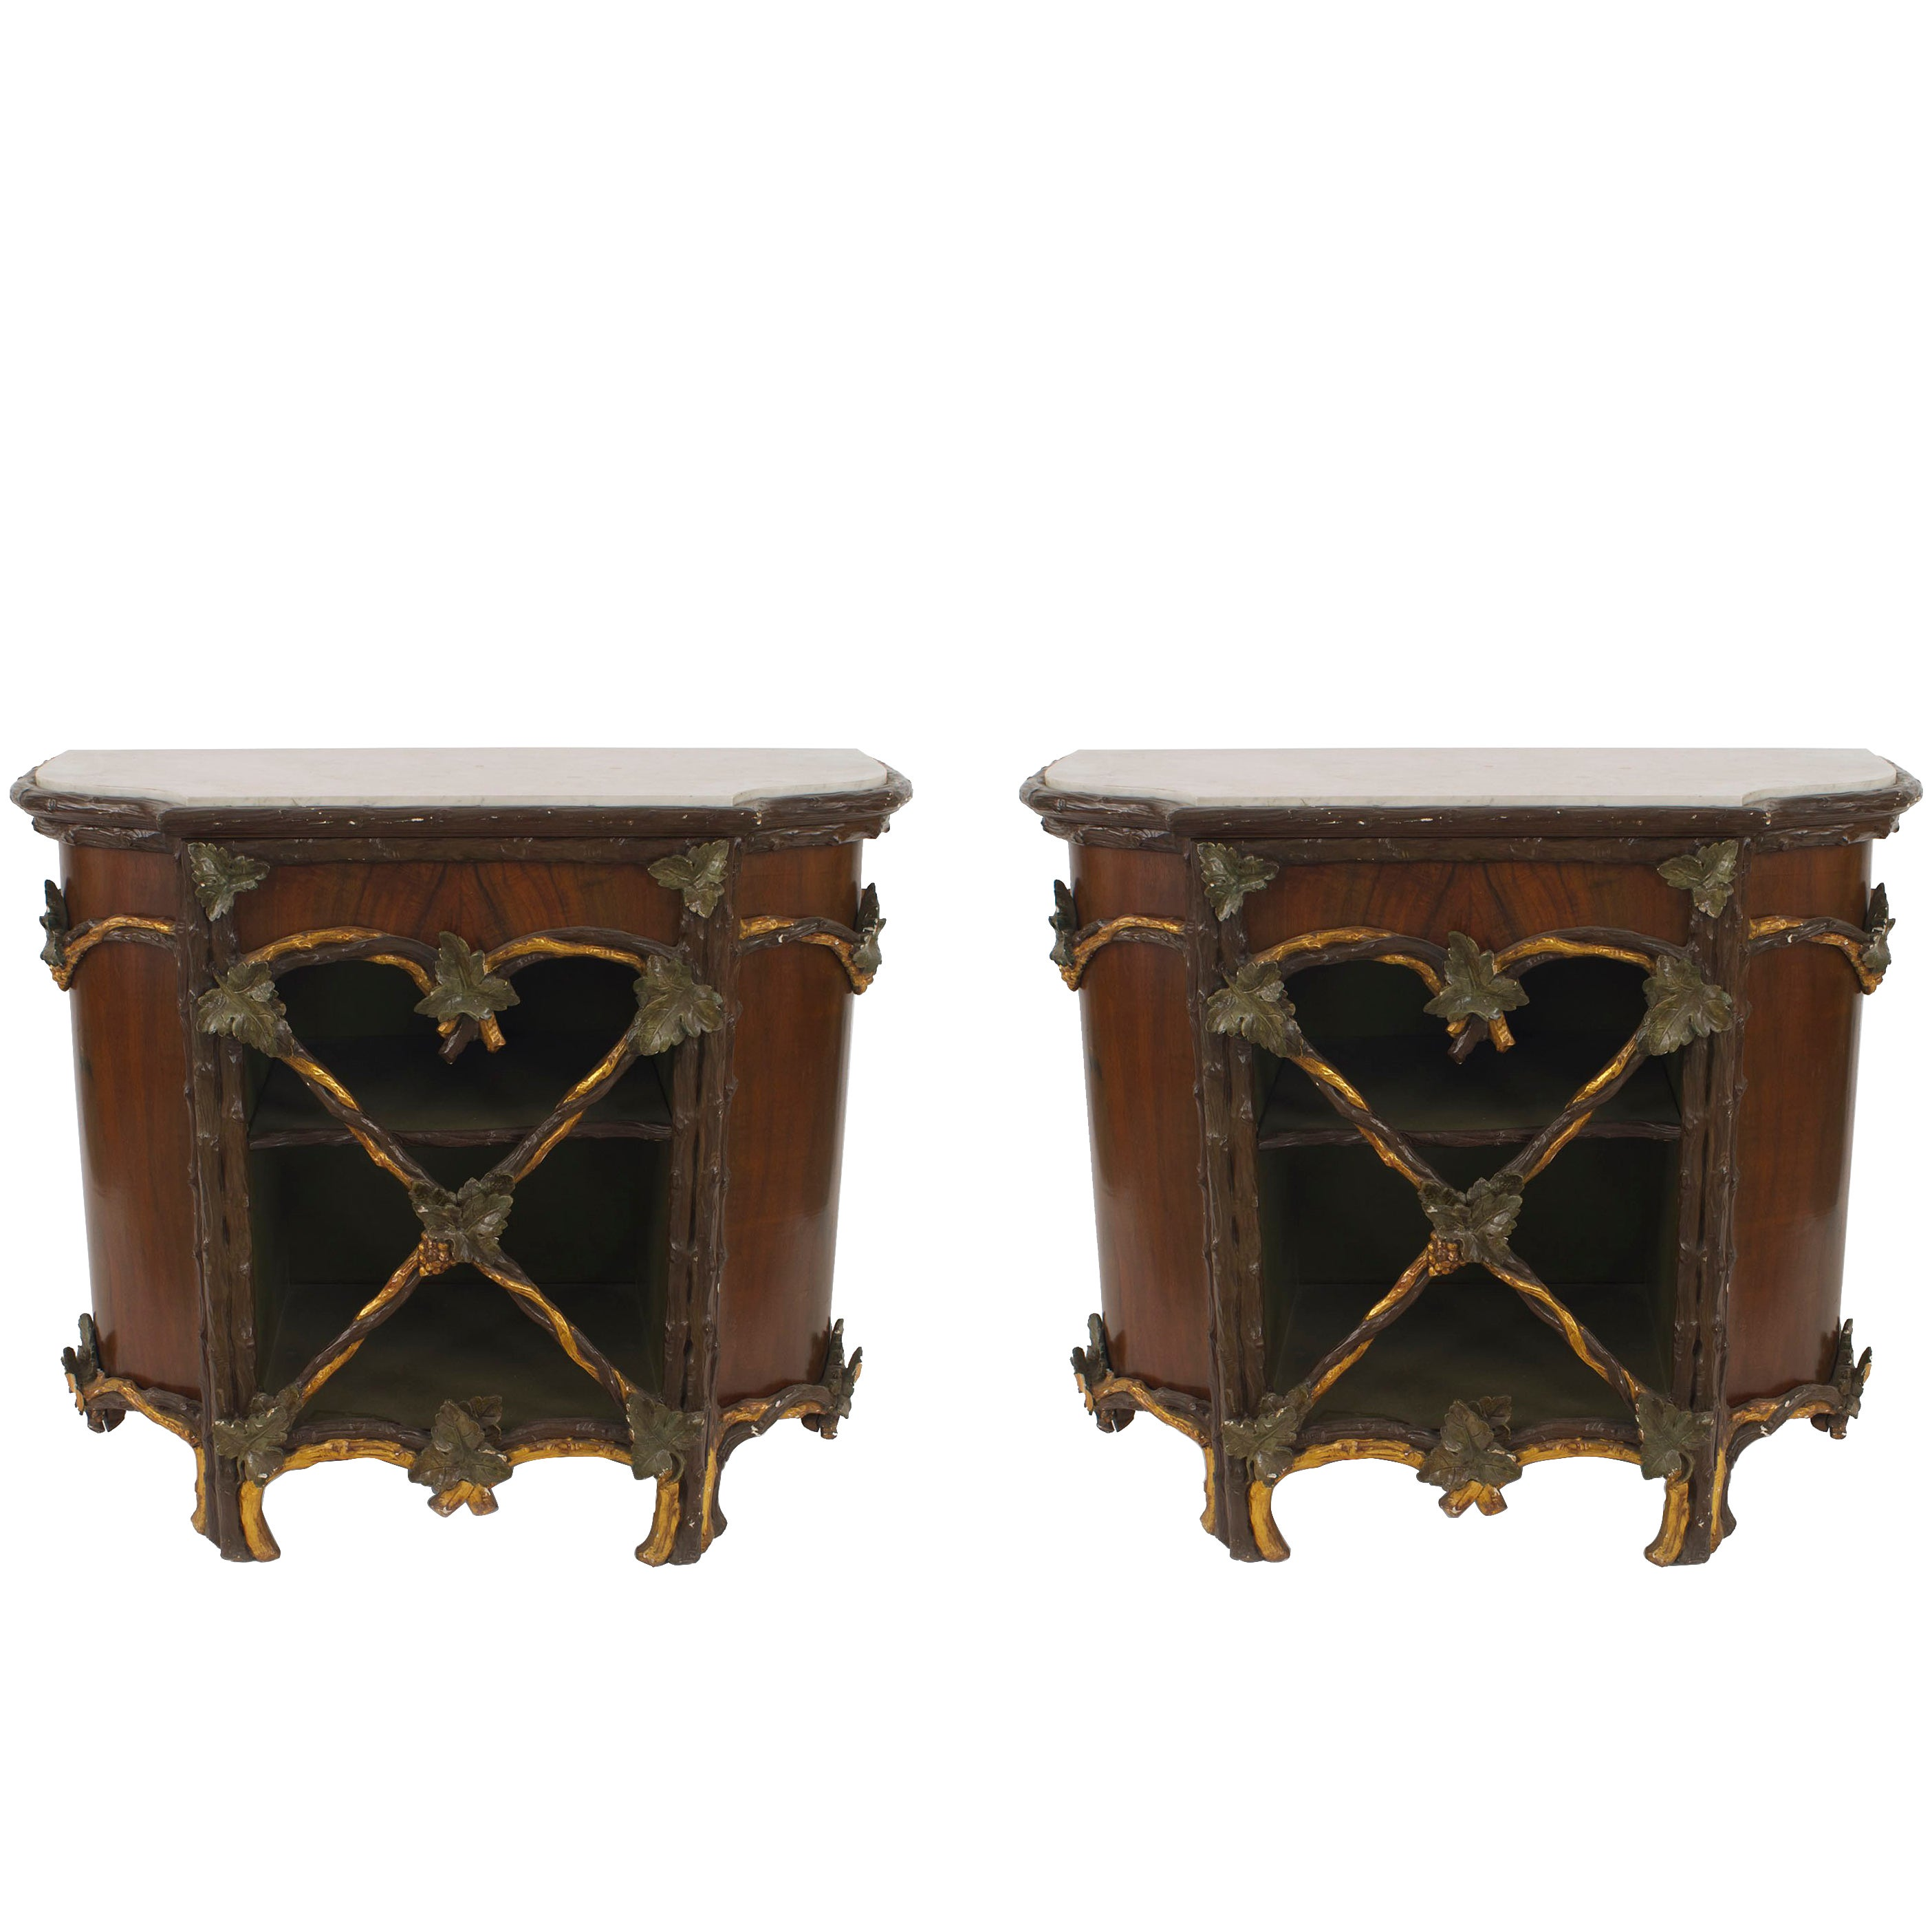 Pair of 19th c. Rustic Painted and Gilded Marble Top Commodes